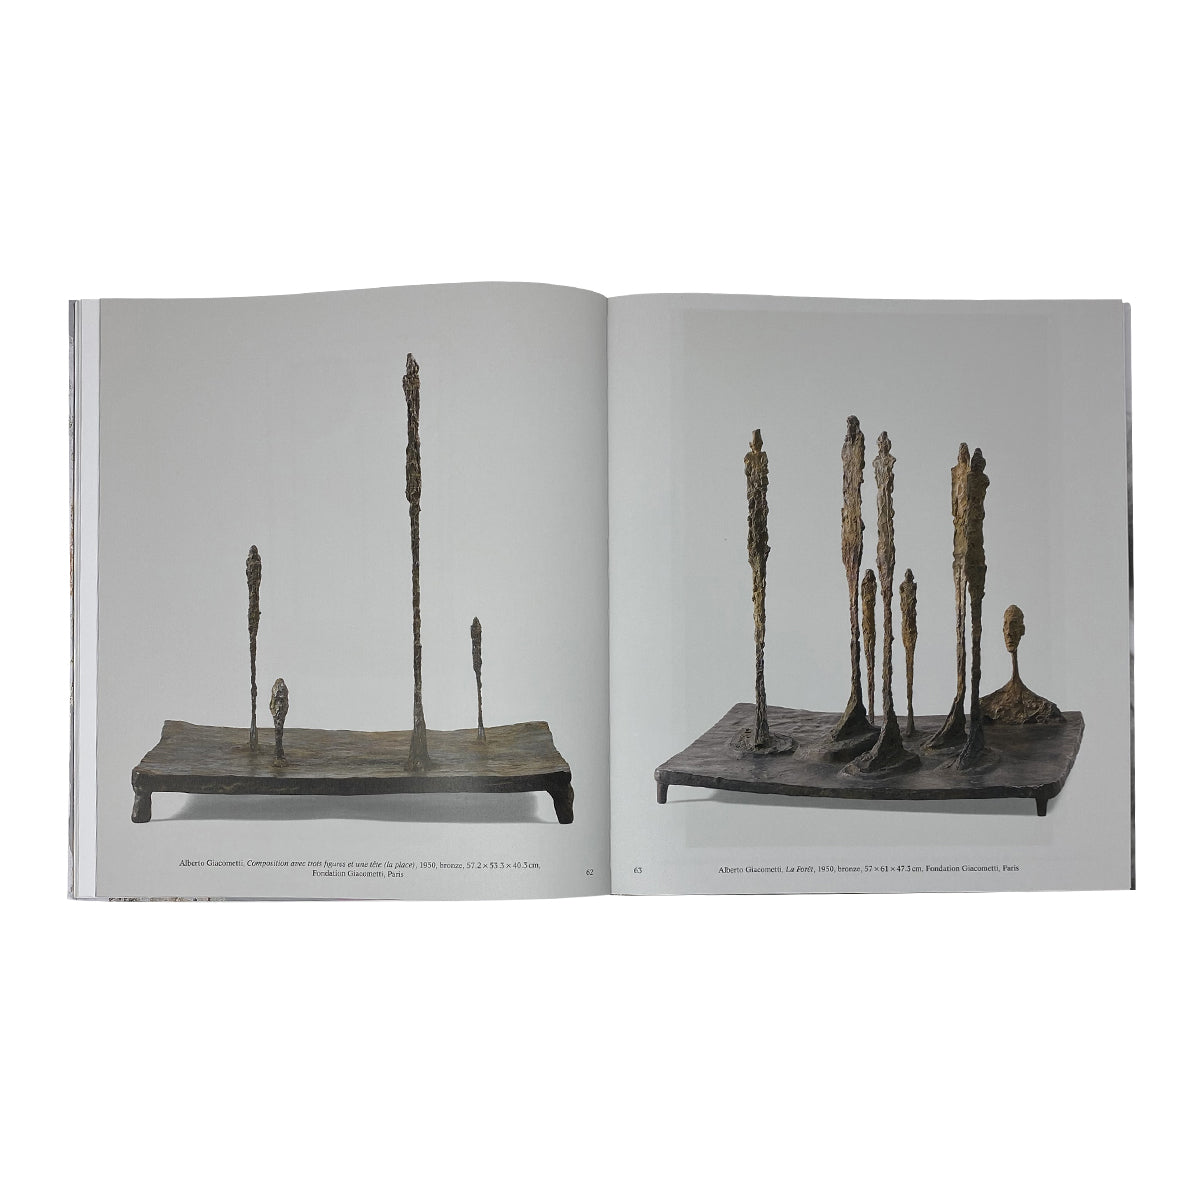 Bacon Giacometti - Book